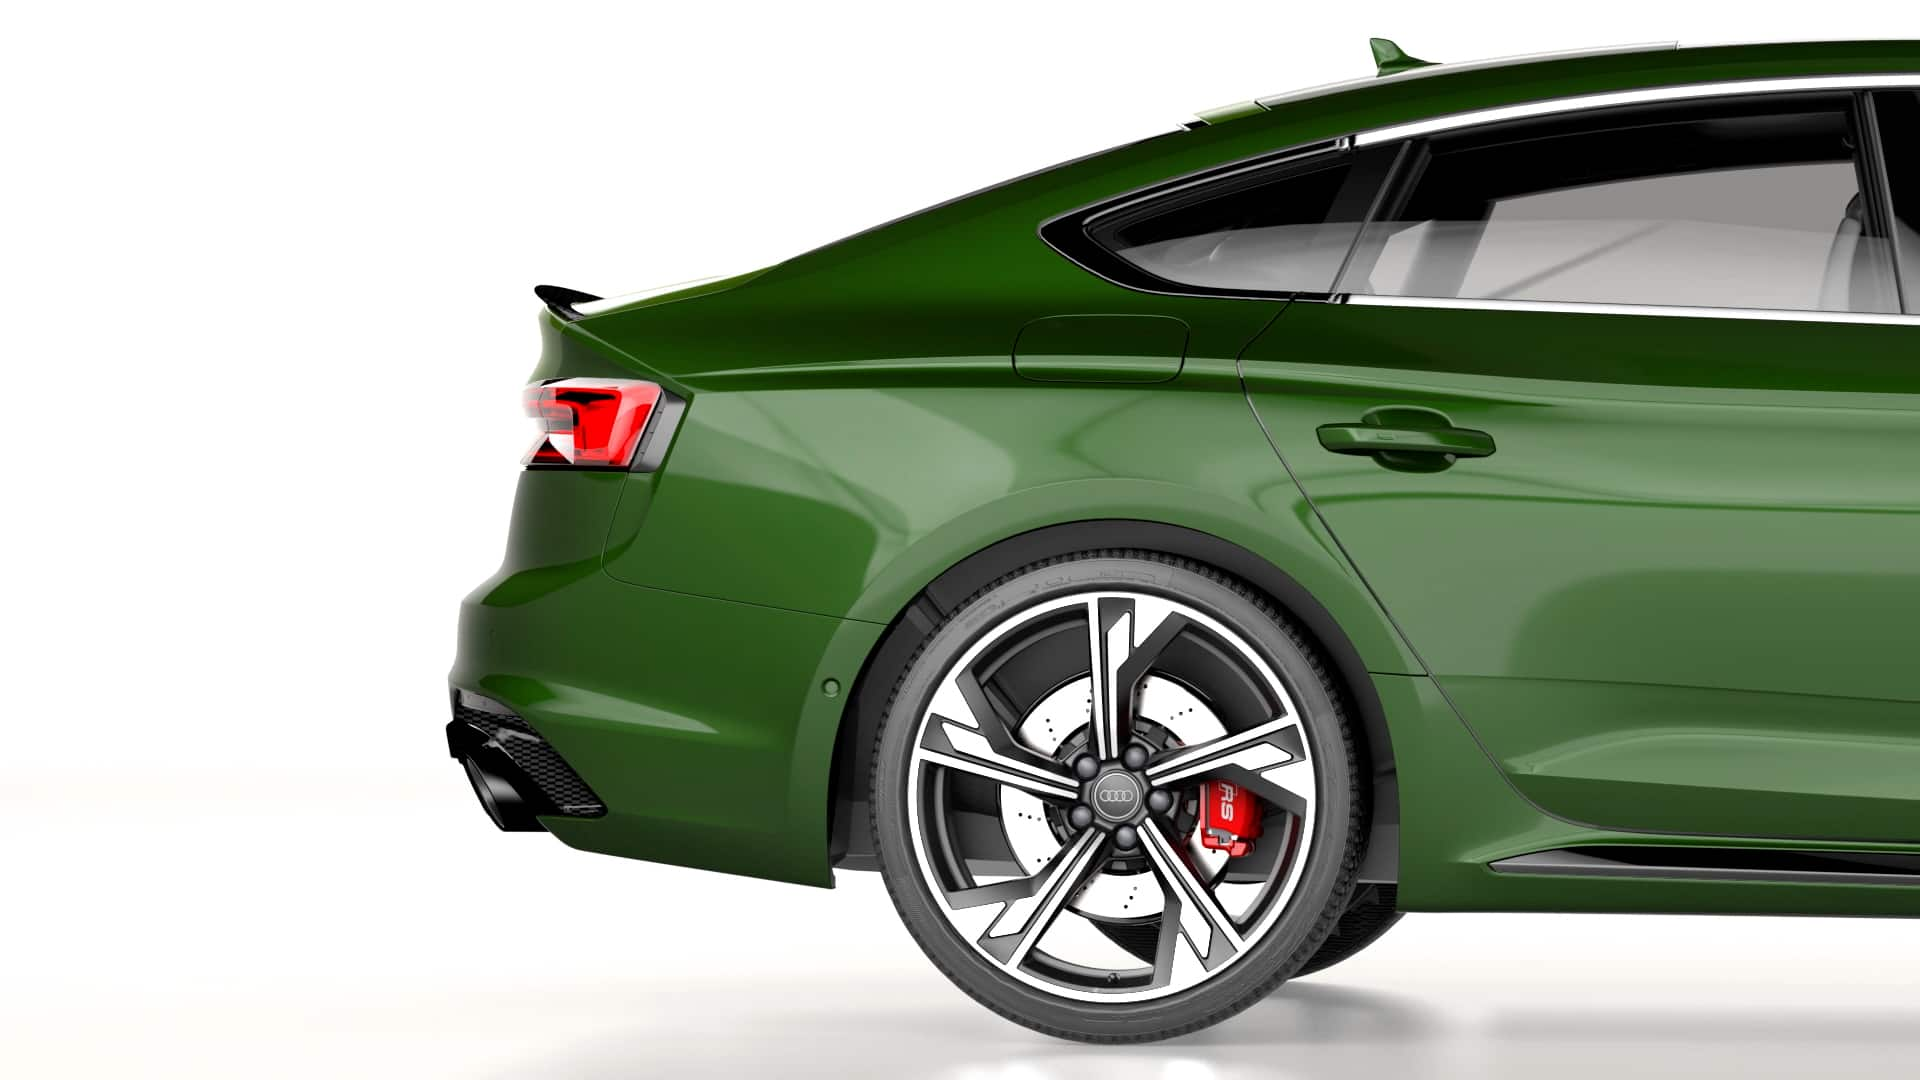 Vista laterale Audi RS 5 Sportback